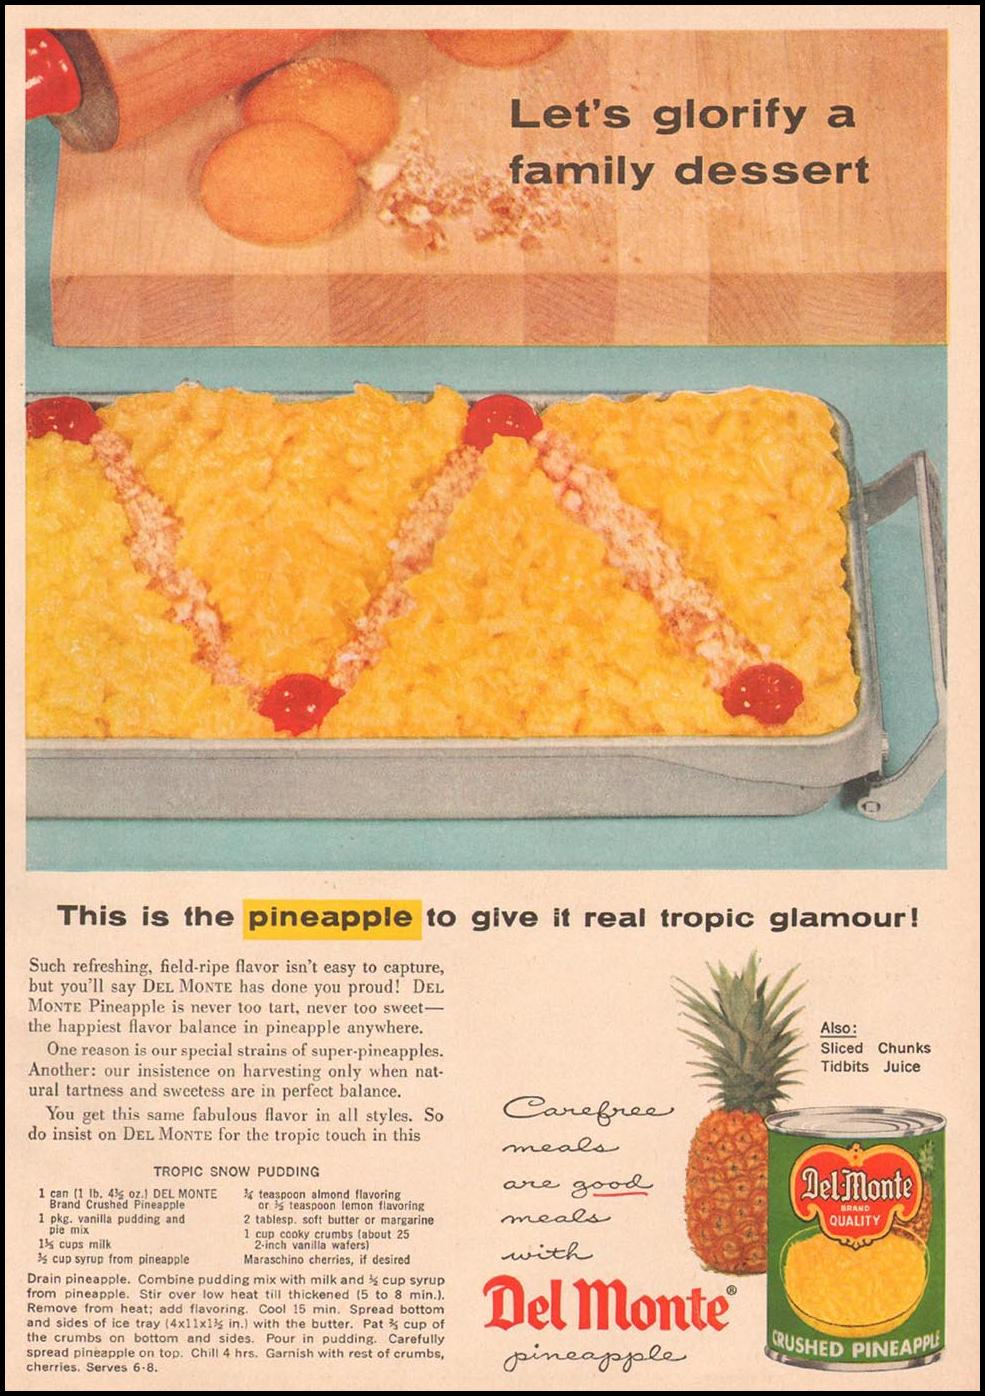 DEL MONTE PINEAPPLE GOOD HOUSEKEEPING 05/01/1957 p. 133